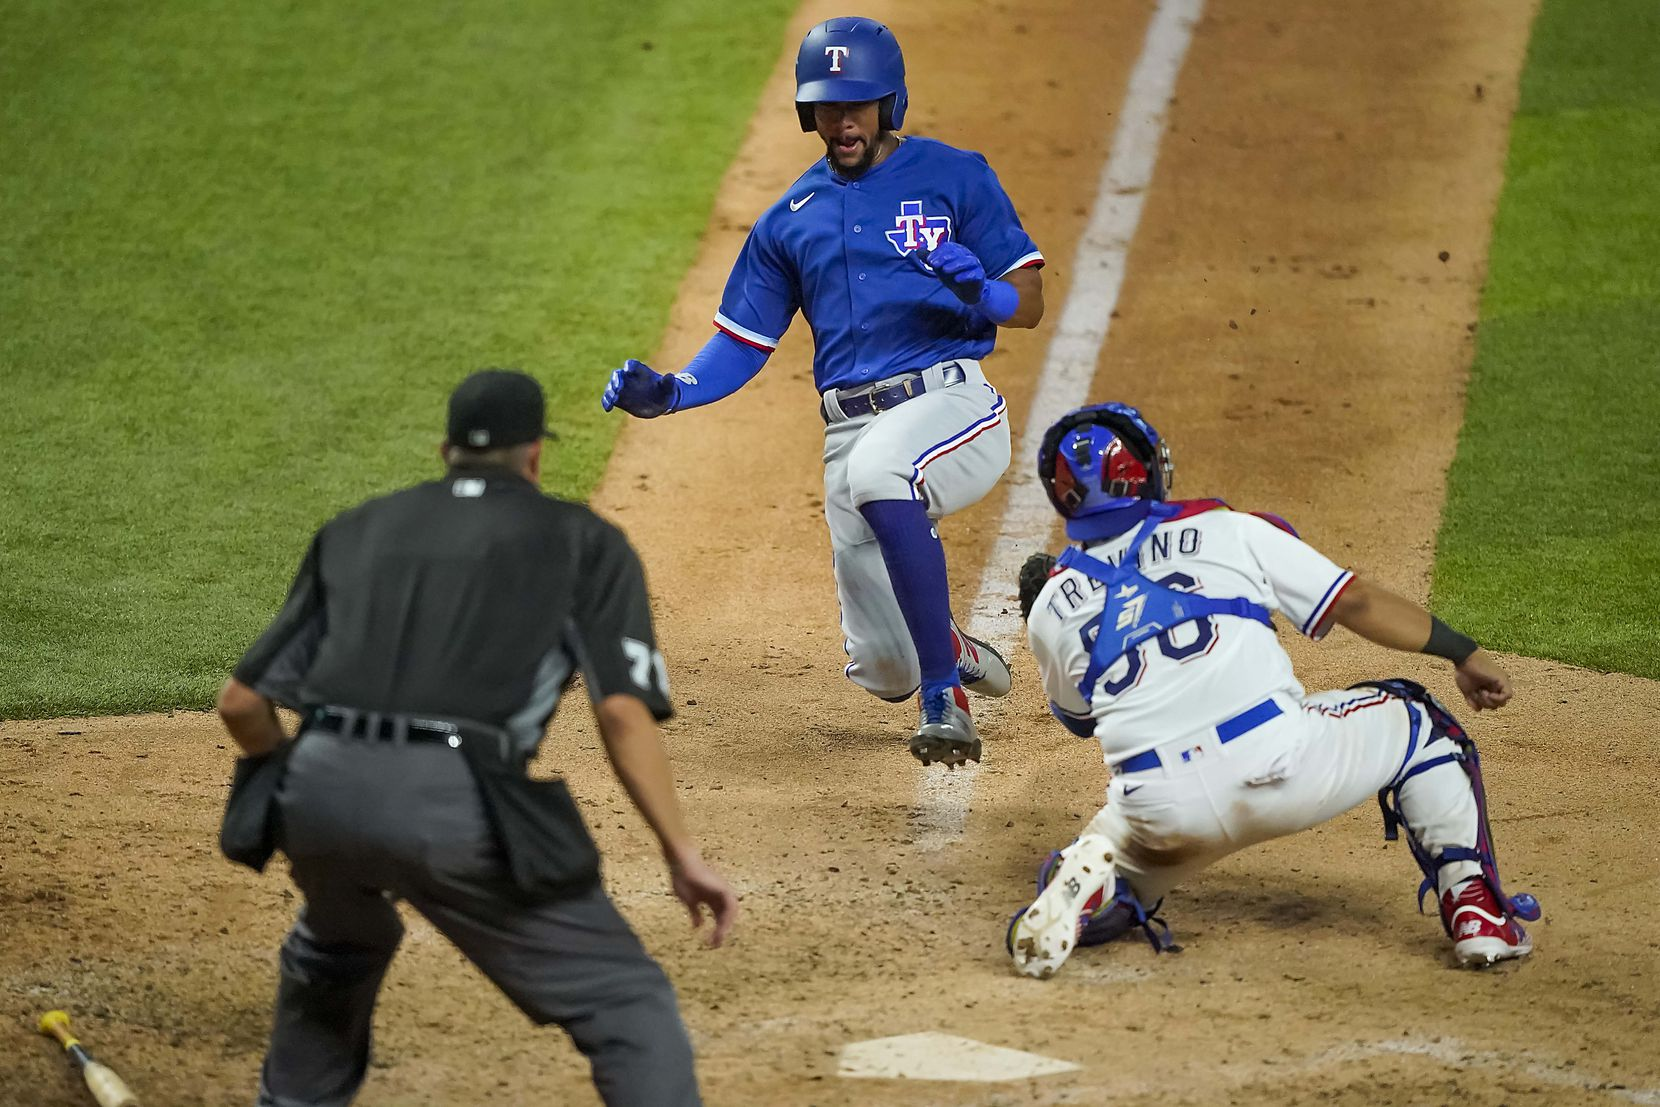 Leody Taveras is out at home trying to score from third on an infield grounder as catcher Jose Trevino waits with the tag during a Texas Rangers Summer Camp intrasquad game at Globe Life Field on Saturday, July 18, 2020.